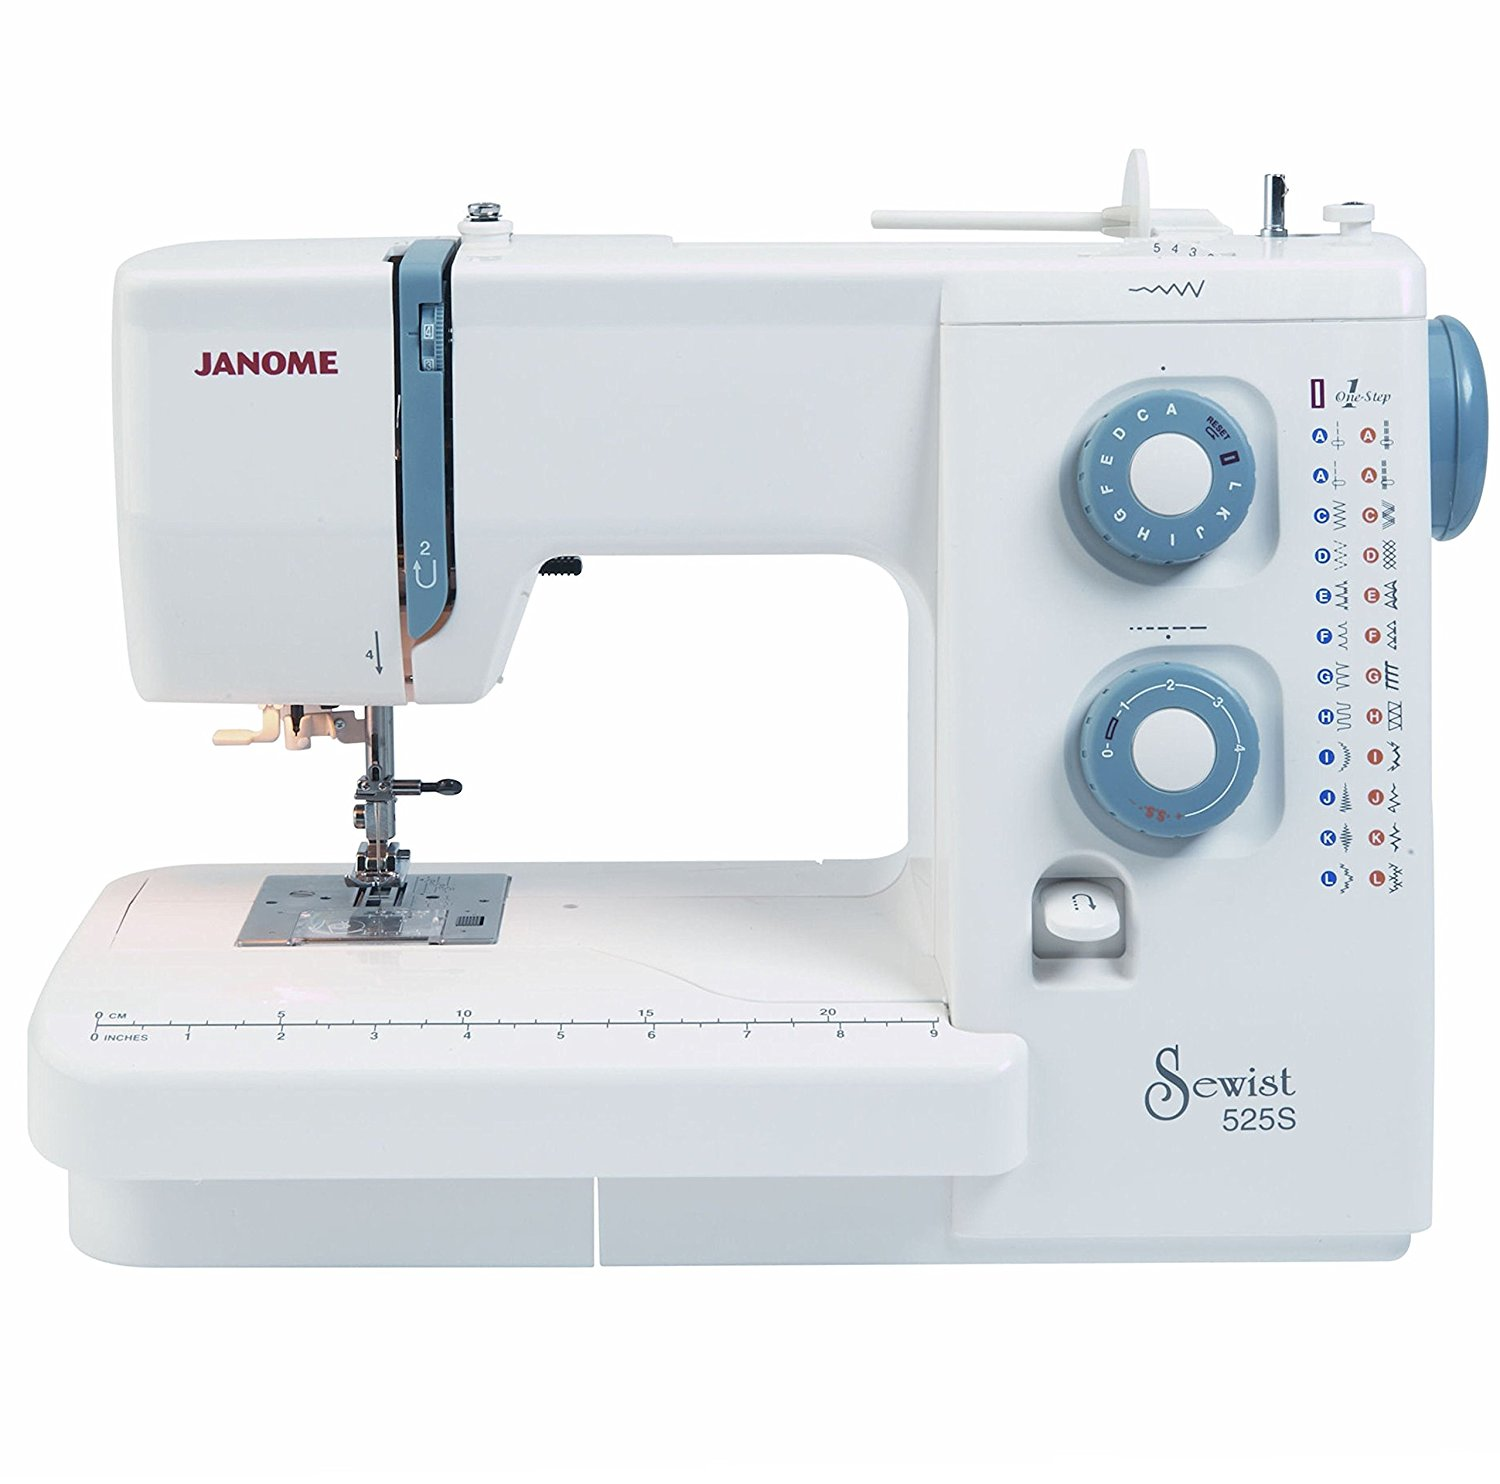 quilting modes janome craft in memory machine professional quilt pin sewing has stitches and